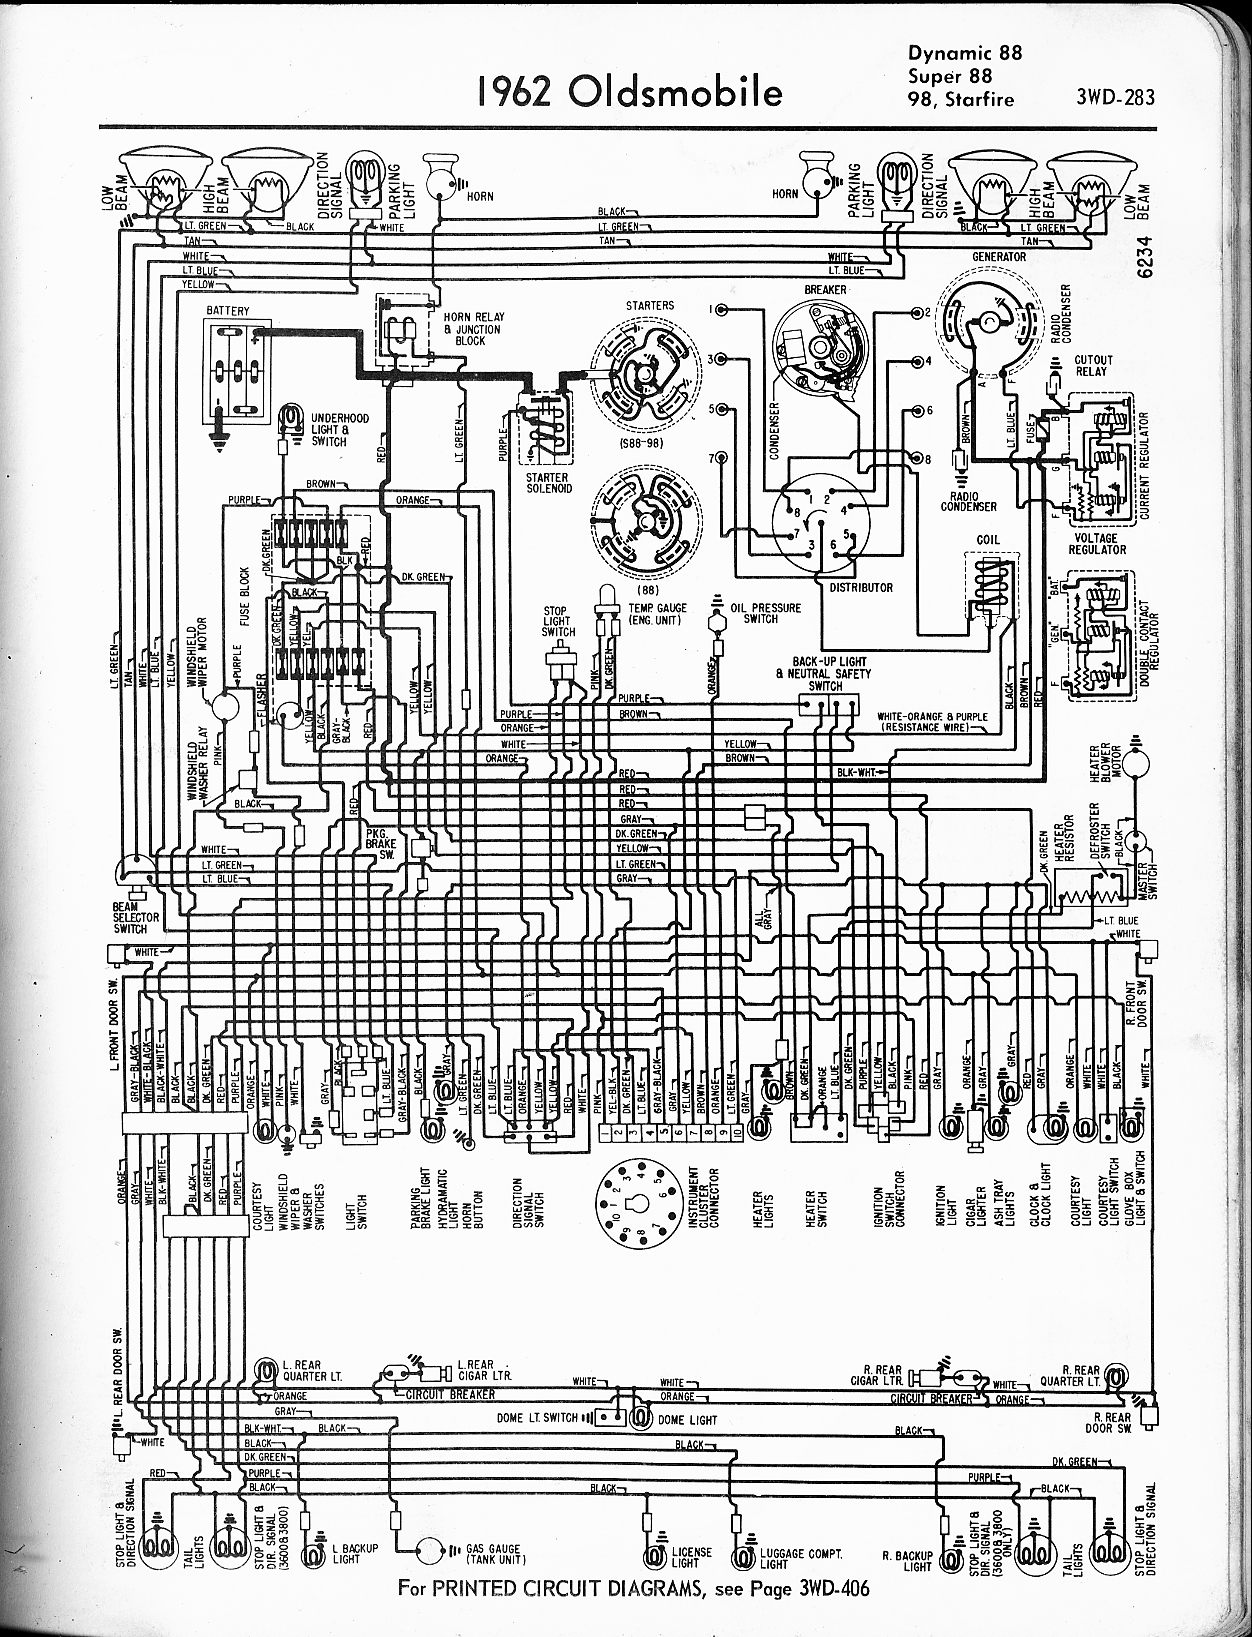 oldsmobile wiring diagrams the old car manual project rh oldcarmanualproject com 1949 Oldsmobile Wiring-Diagram 1995 Oldsmobile Wiring Diagrams